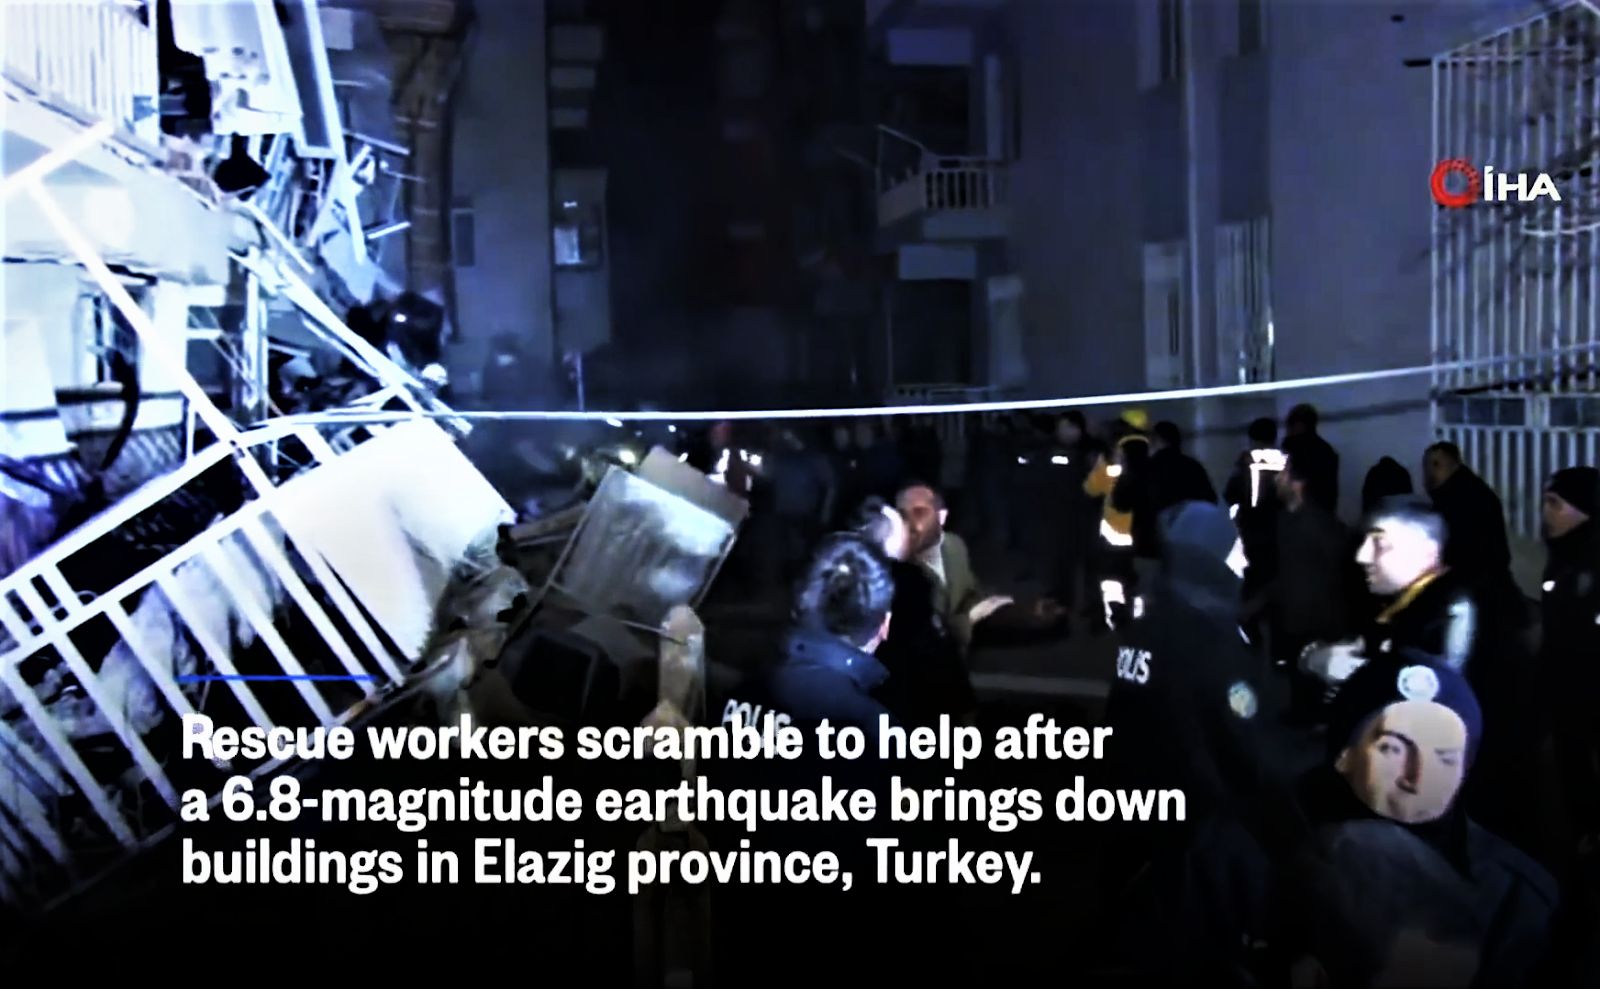 Earthquake Collapsed Buildings In Elazig Turkey.